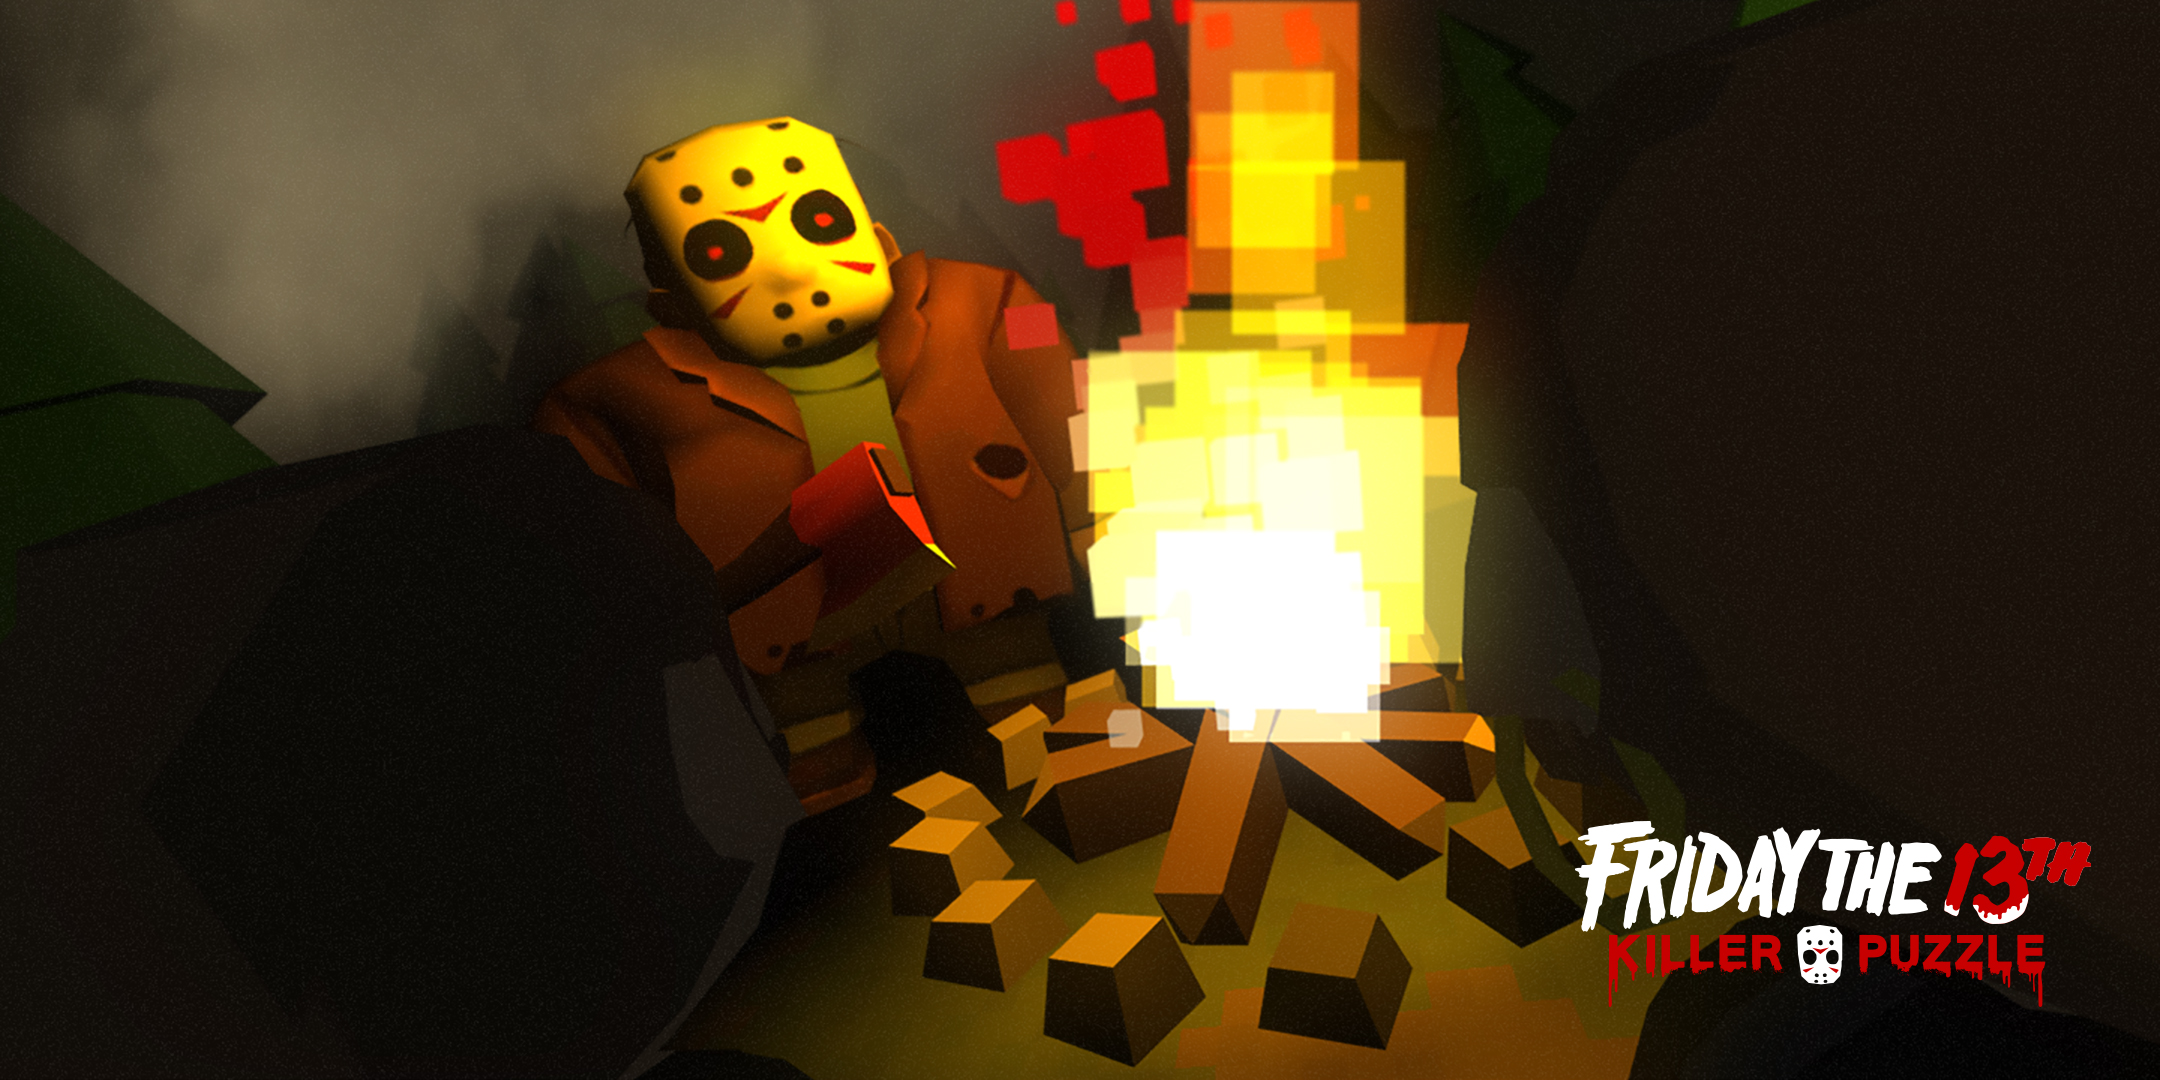 Friday 13th killer puzzle